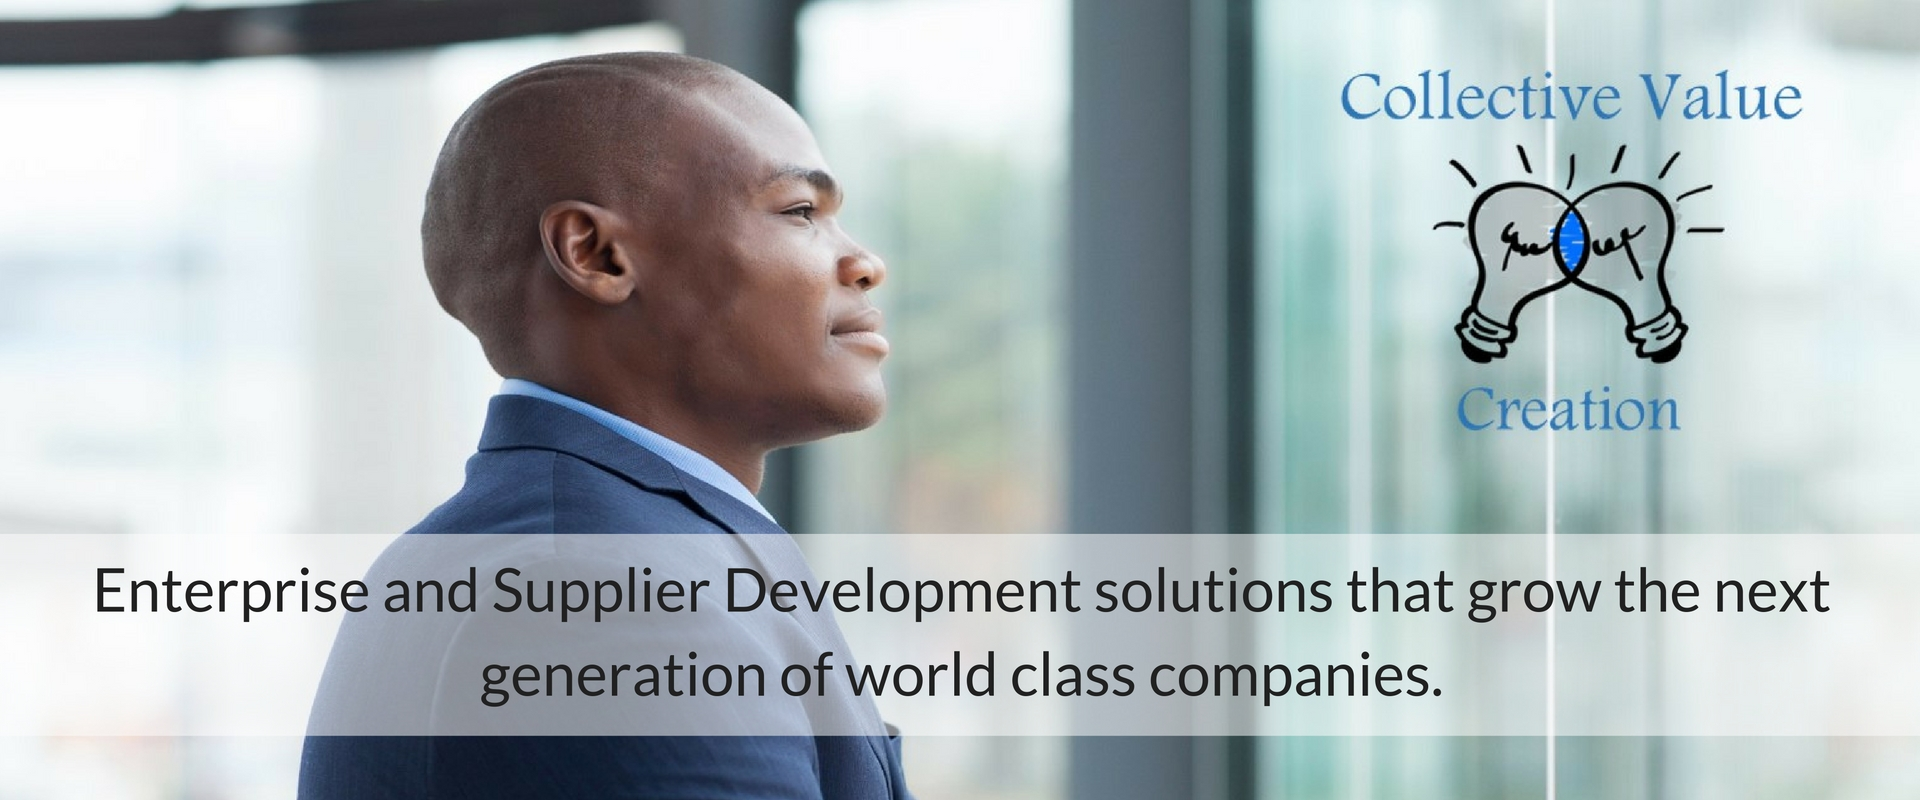 Enterprise and Supplier Development solutions that grow the next generation of world class companies.